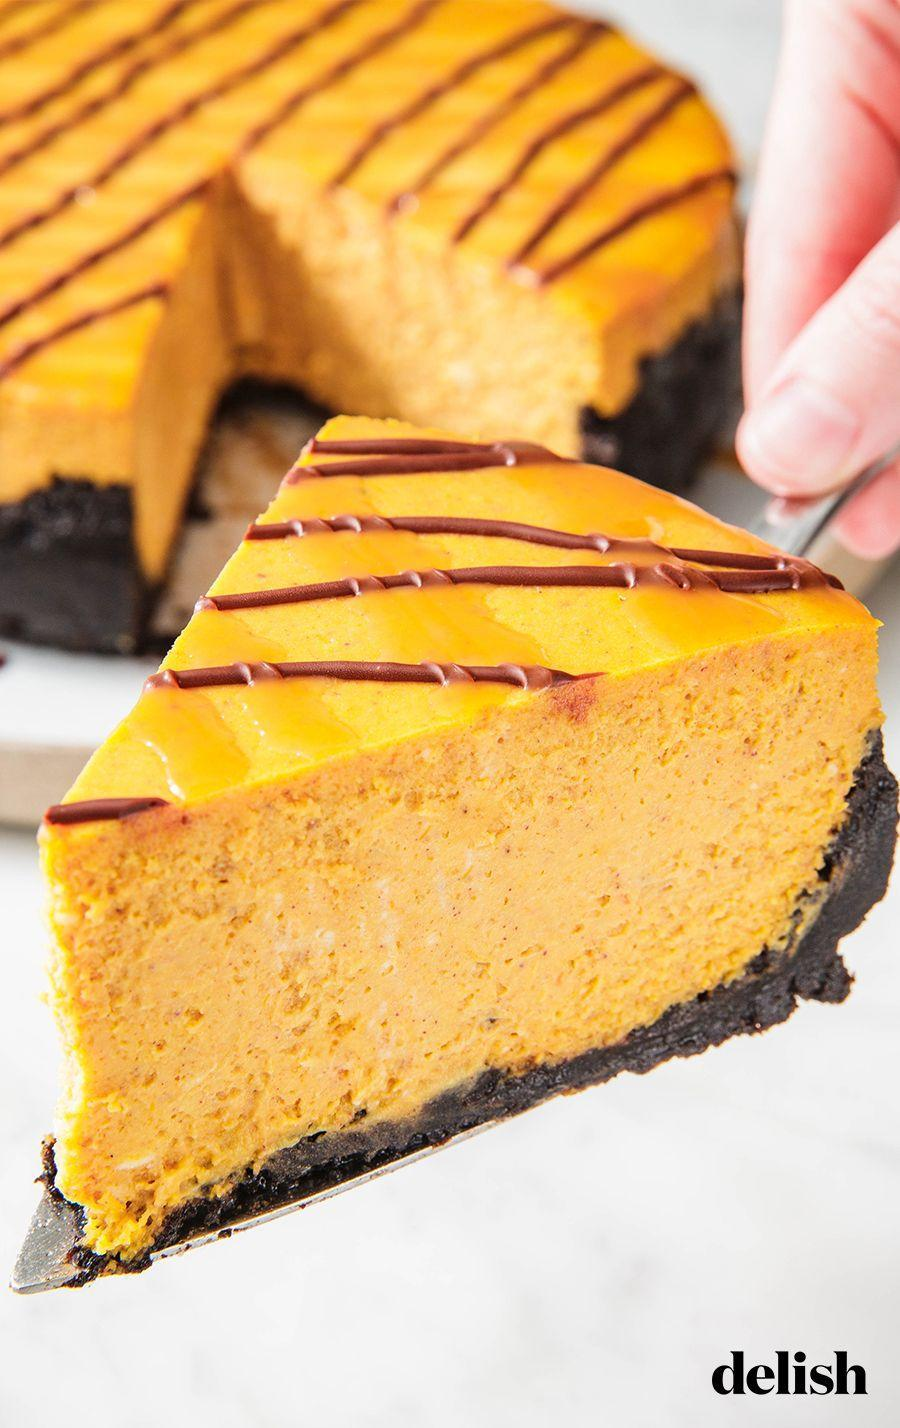 """<p>Oreo crust? Count us in! </p><p>Get the recipe from <a href=""""https://www.delish.com/cooking/recipe-ideas/recipes/a50173/chocolate-pumpkin-cheesecake-recipe/"""" rel=""""nofollow noopener"""" target=""""_blank"""" data-ylk=""""slk:Delish"""" class=""""link rapid-noclick-resp"""">Delish</a>. </p>"""